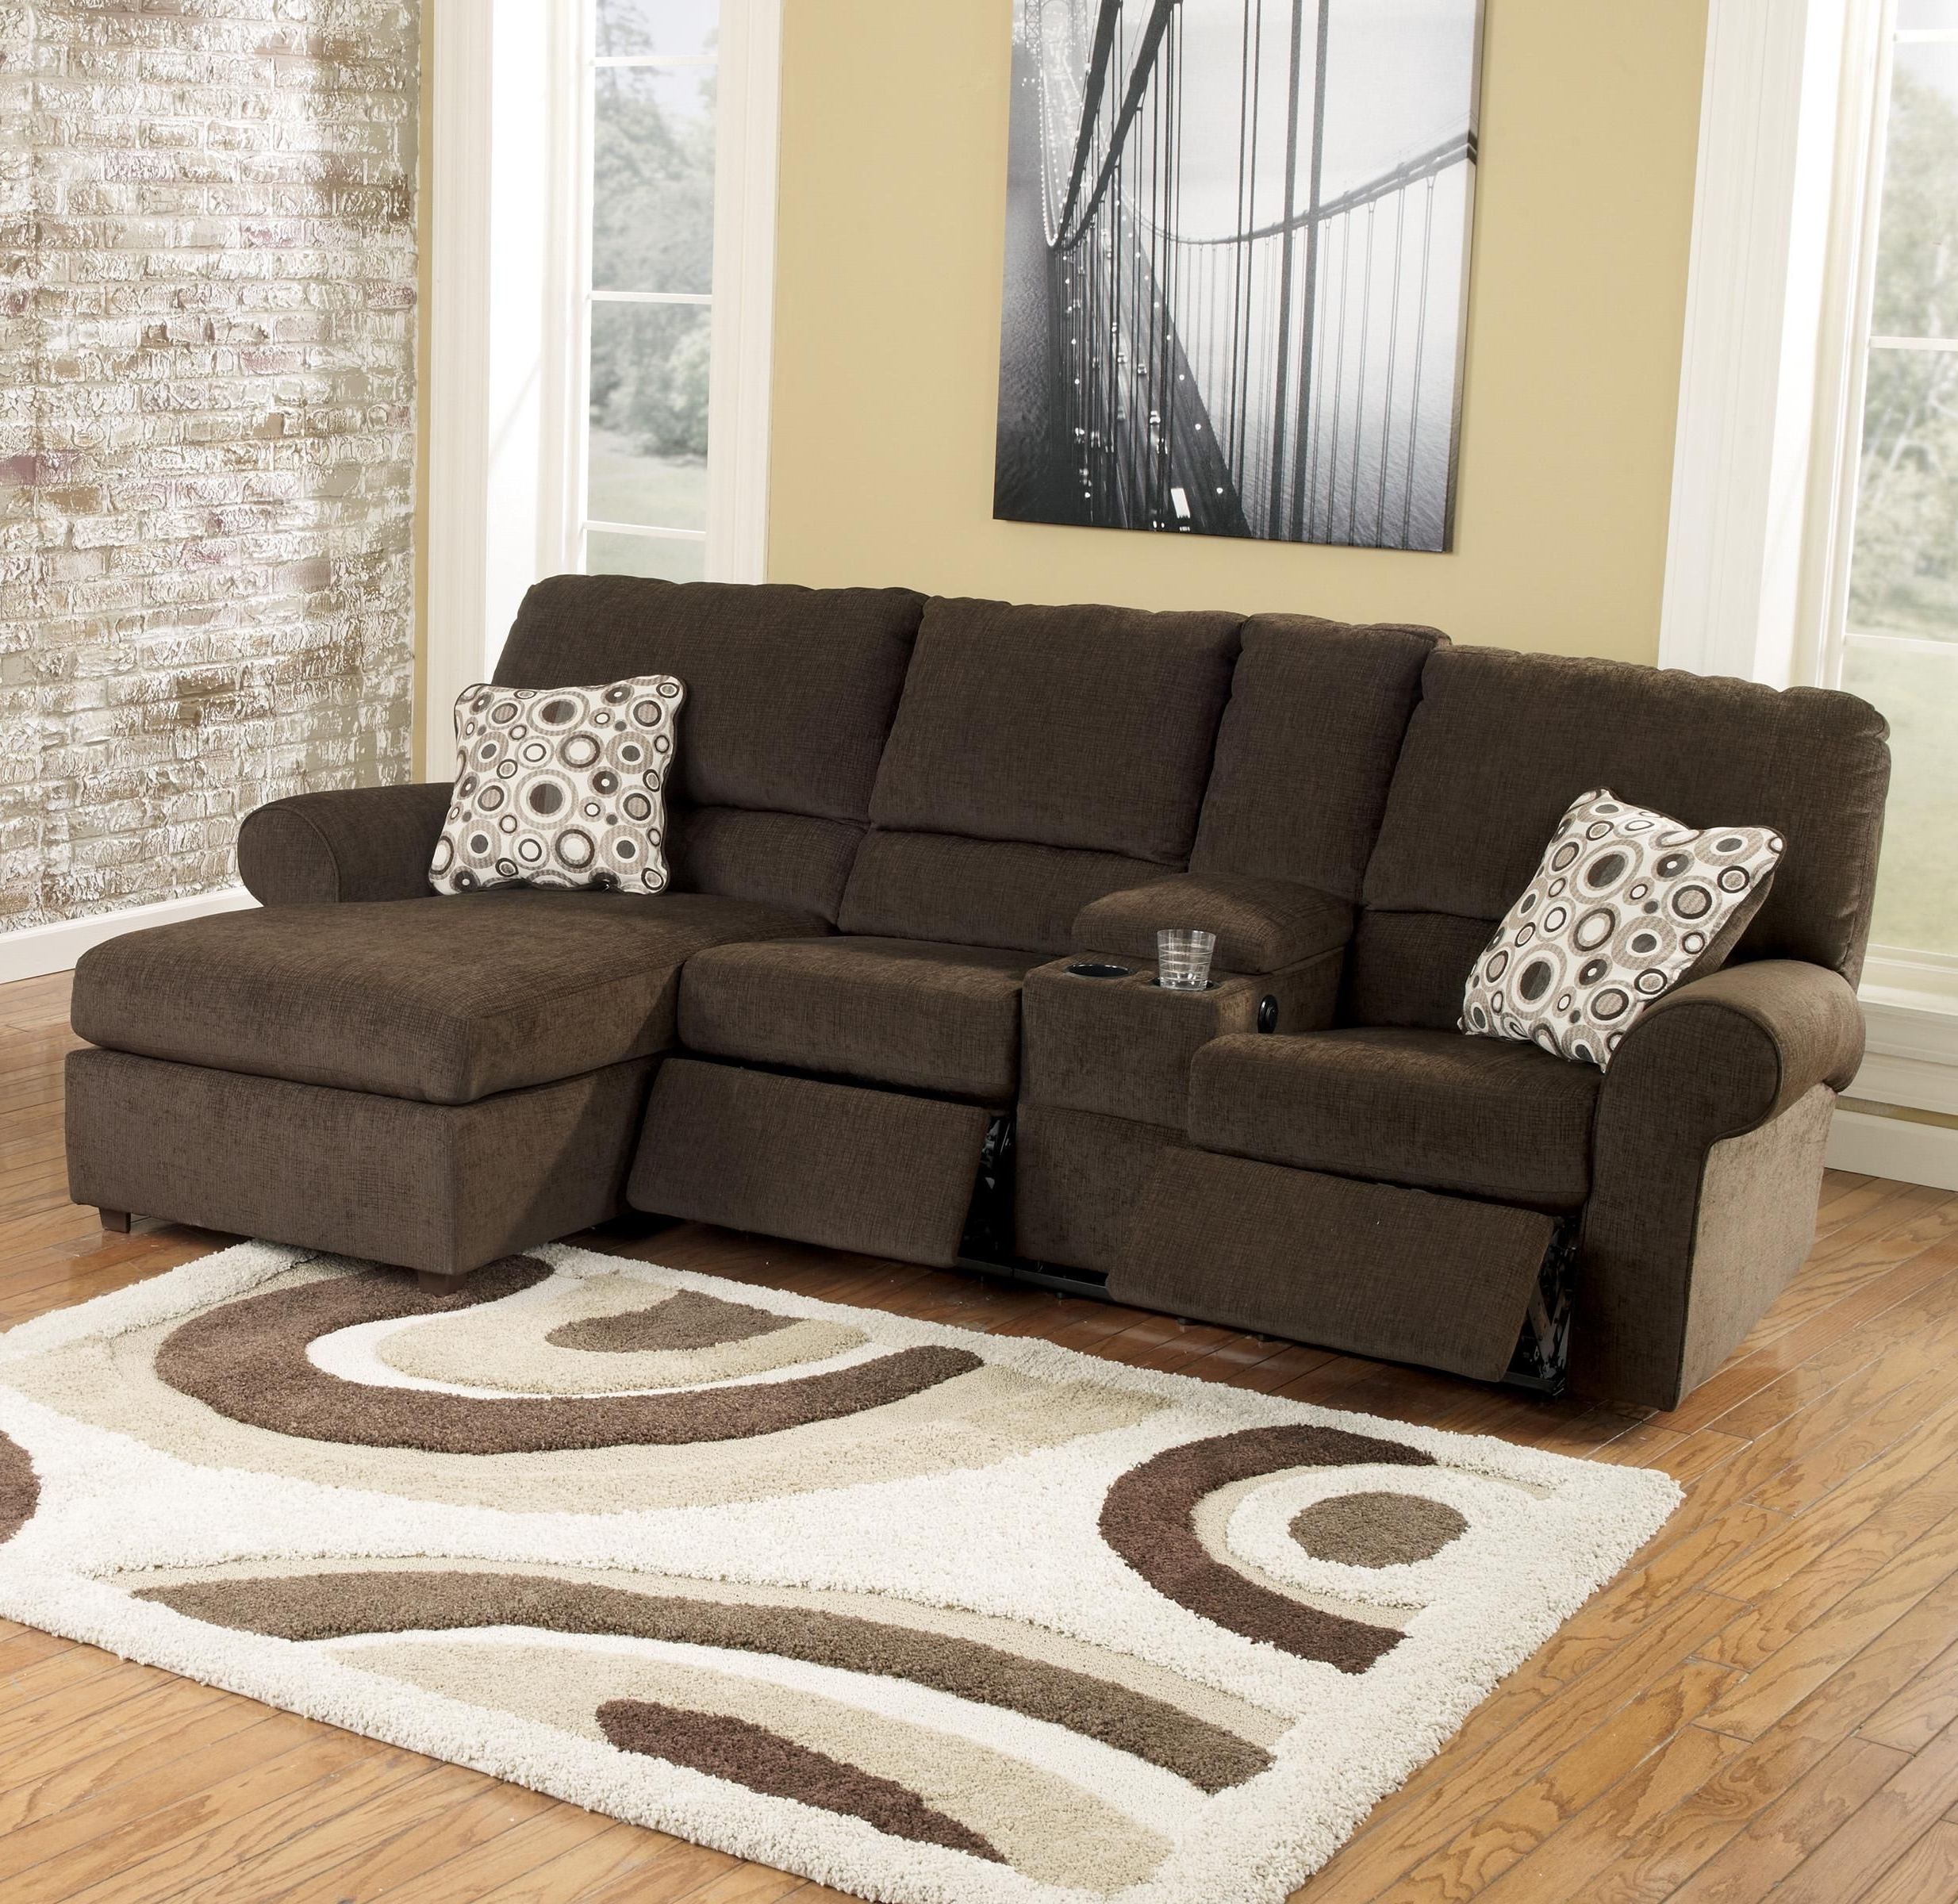 Cybertrack – Chocolate Power Reclining Sectionalsignature With Regard To Well Liked Sofas With Consoles (View 5 of 15)